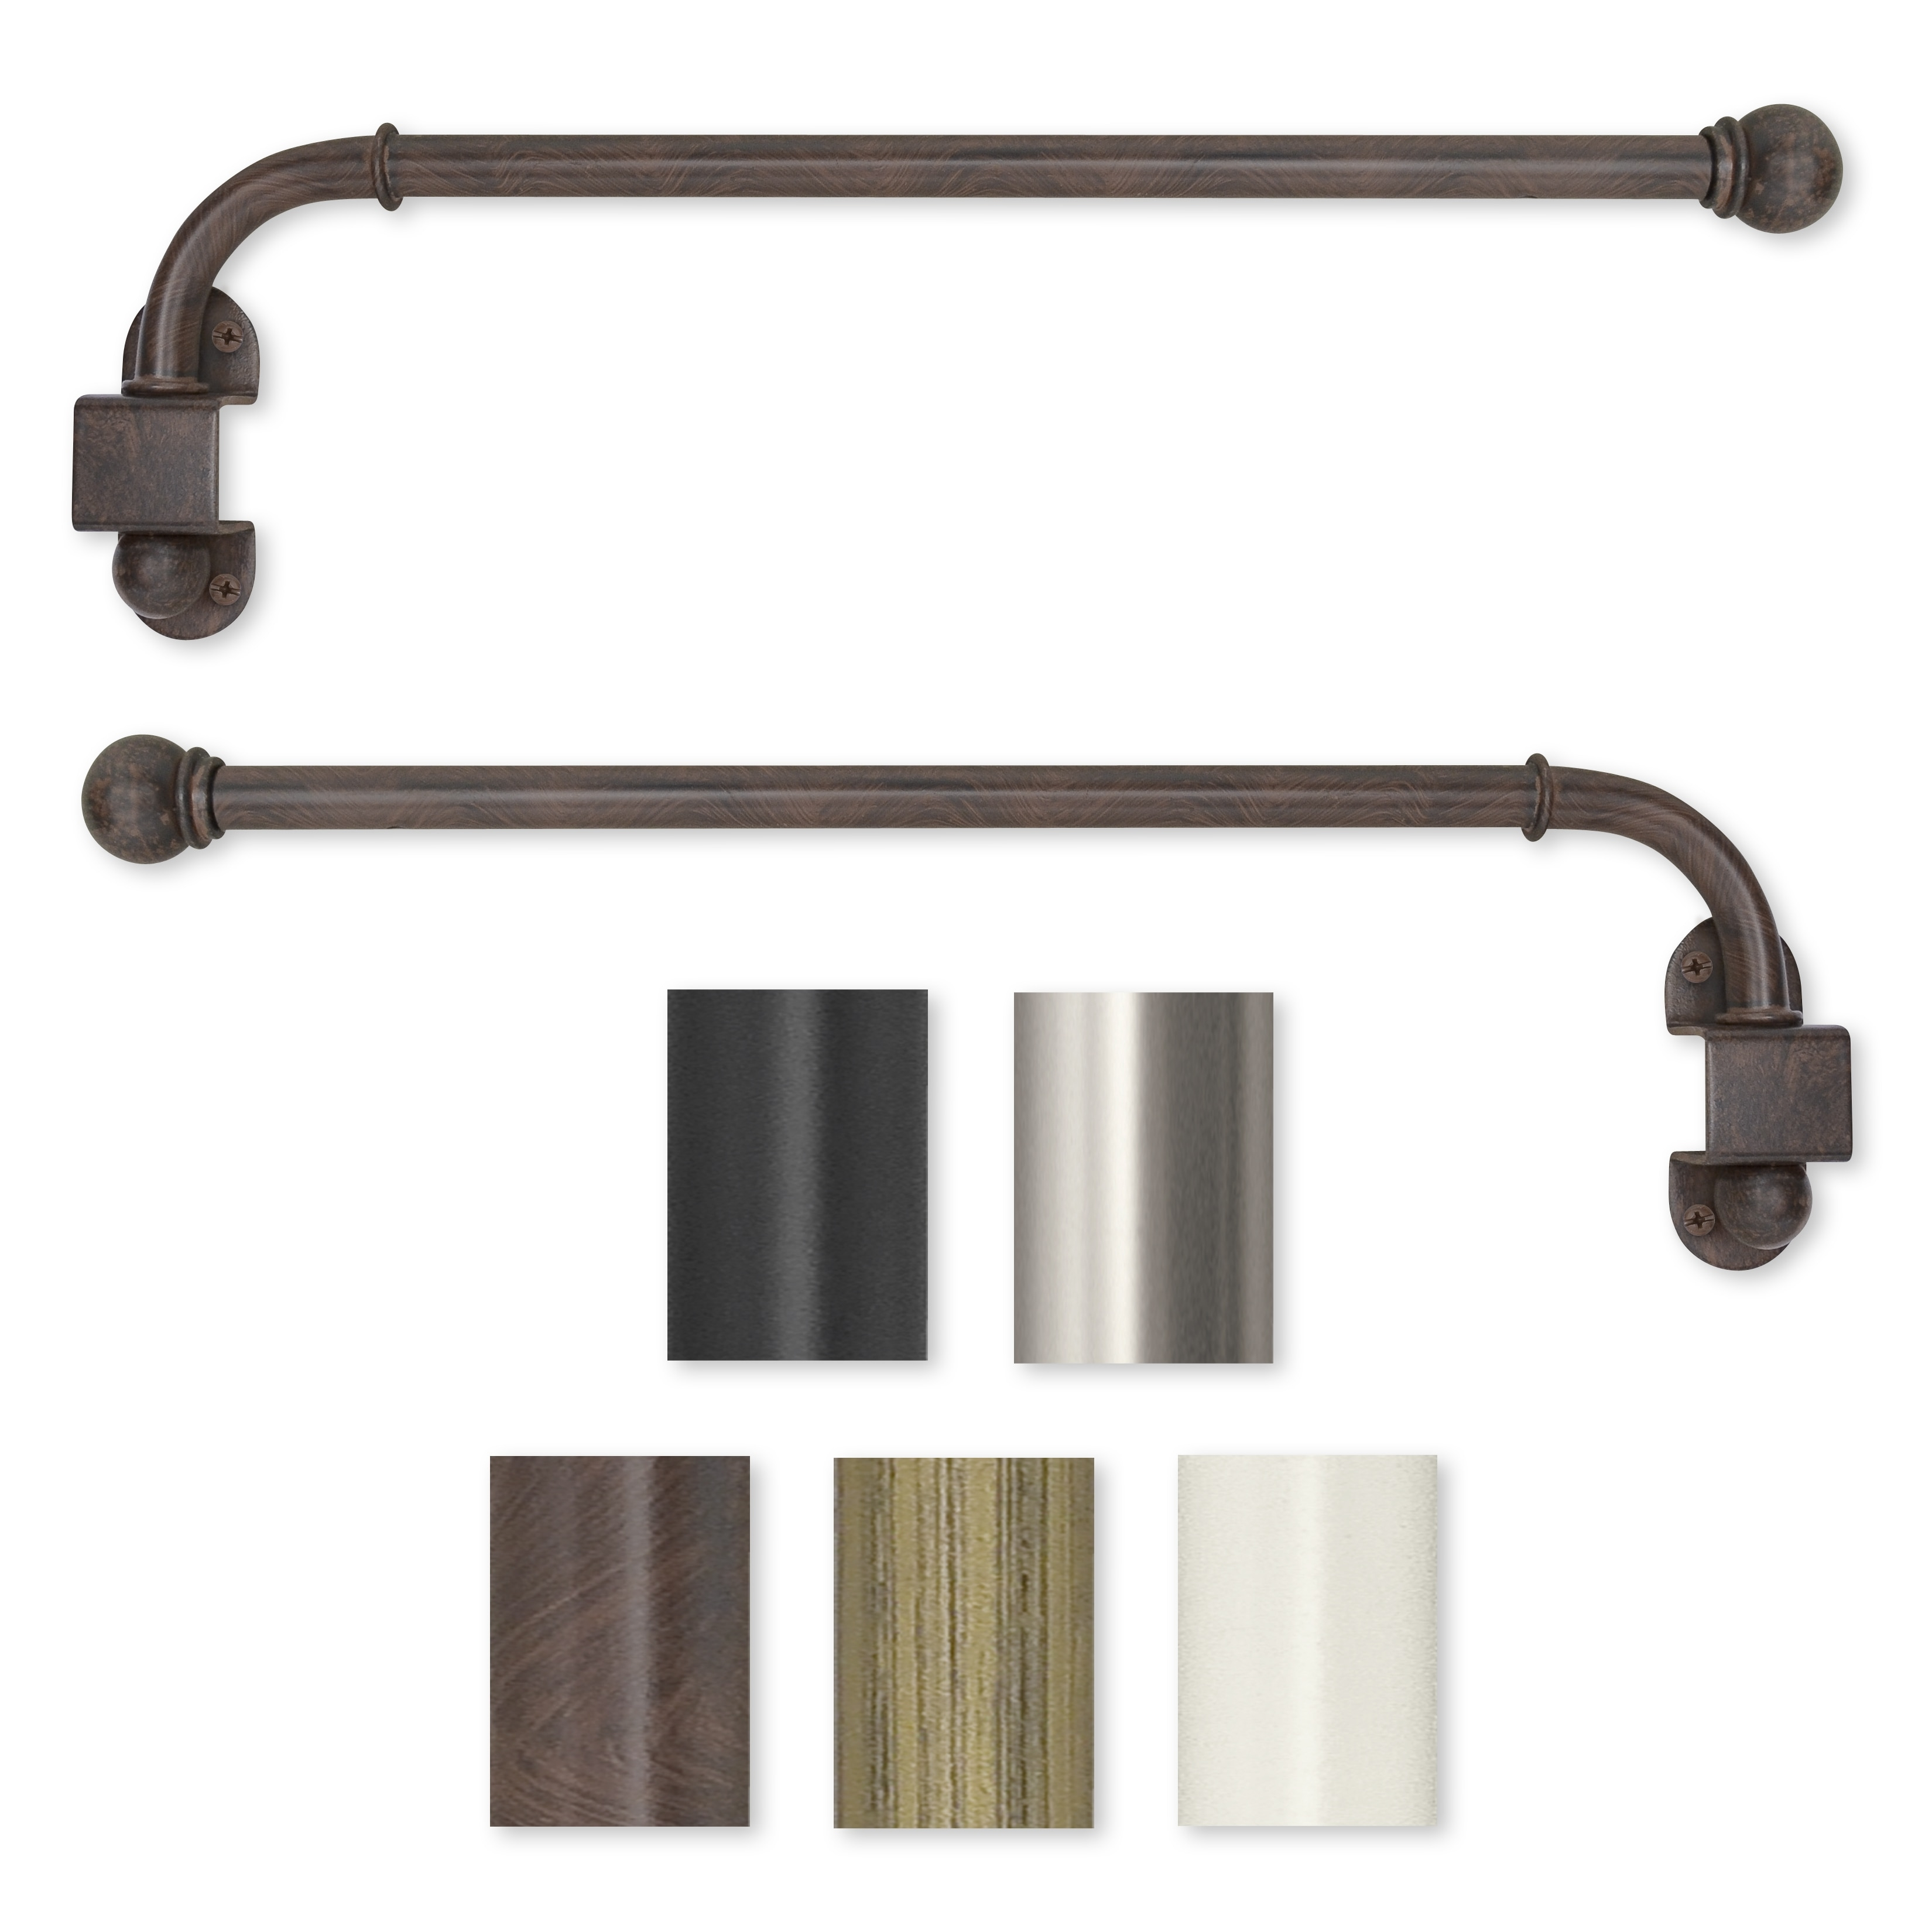 Metal Curtain Rods Nz Business For Curtains Decoration With Cafe Curtain Rods (Image 21 of 25)